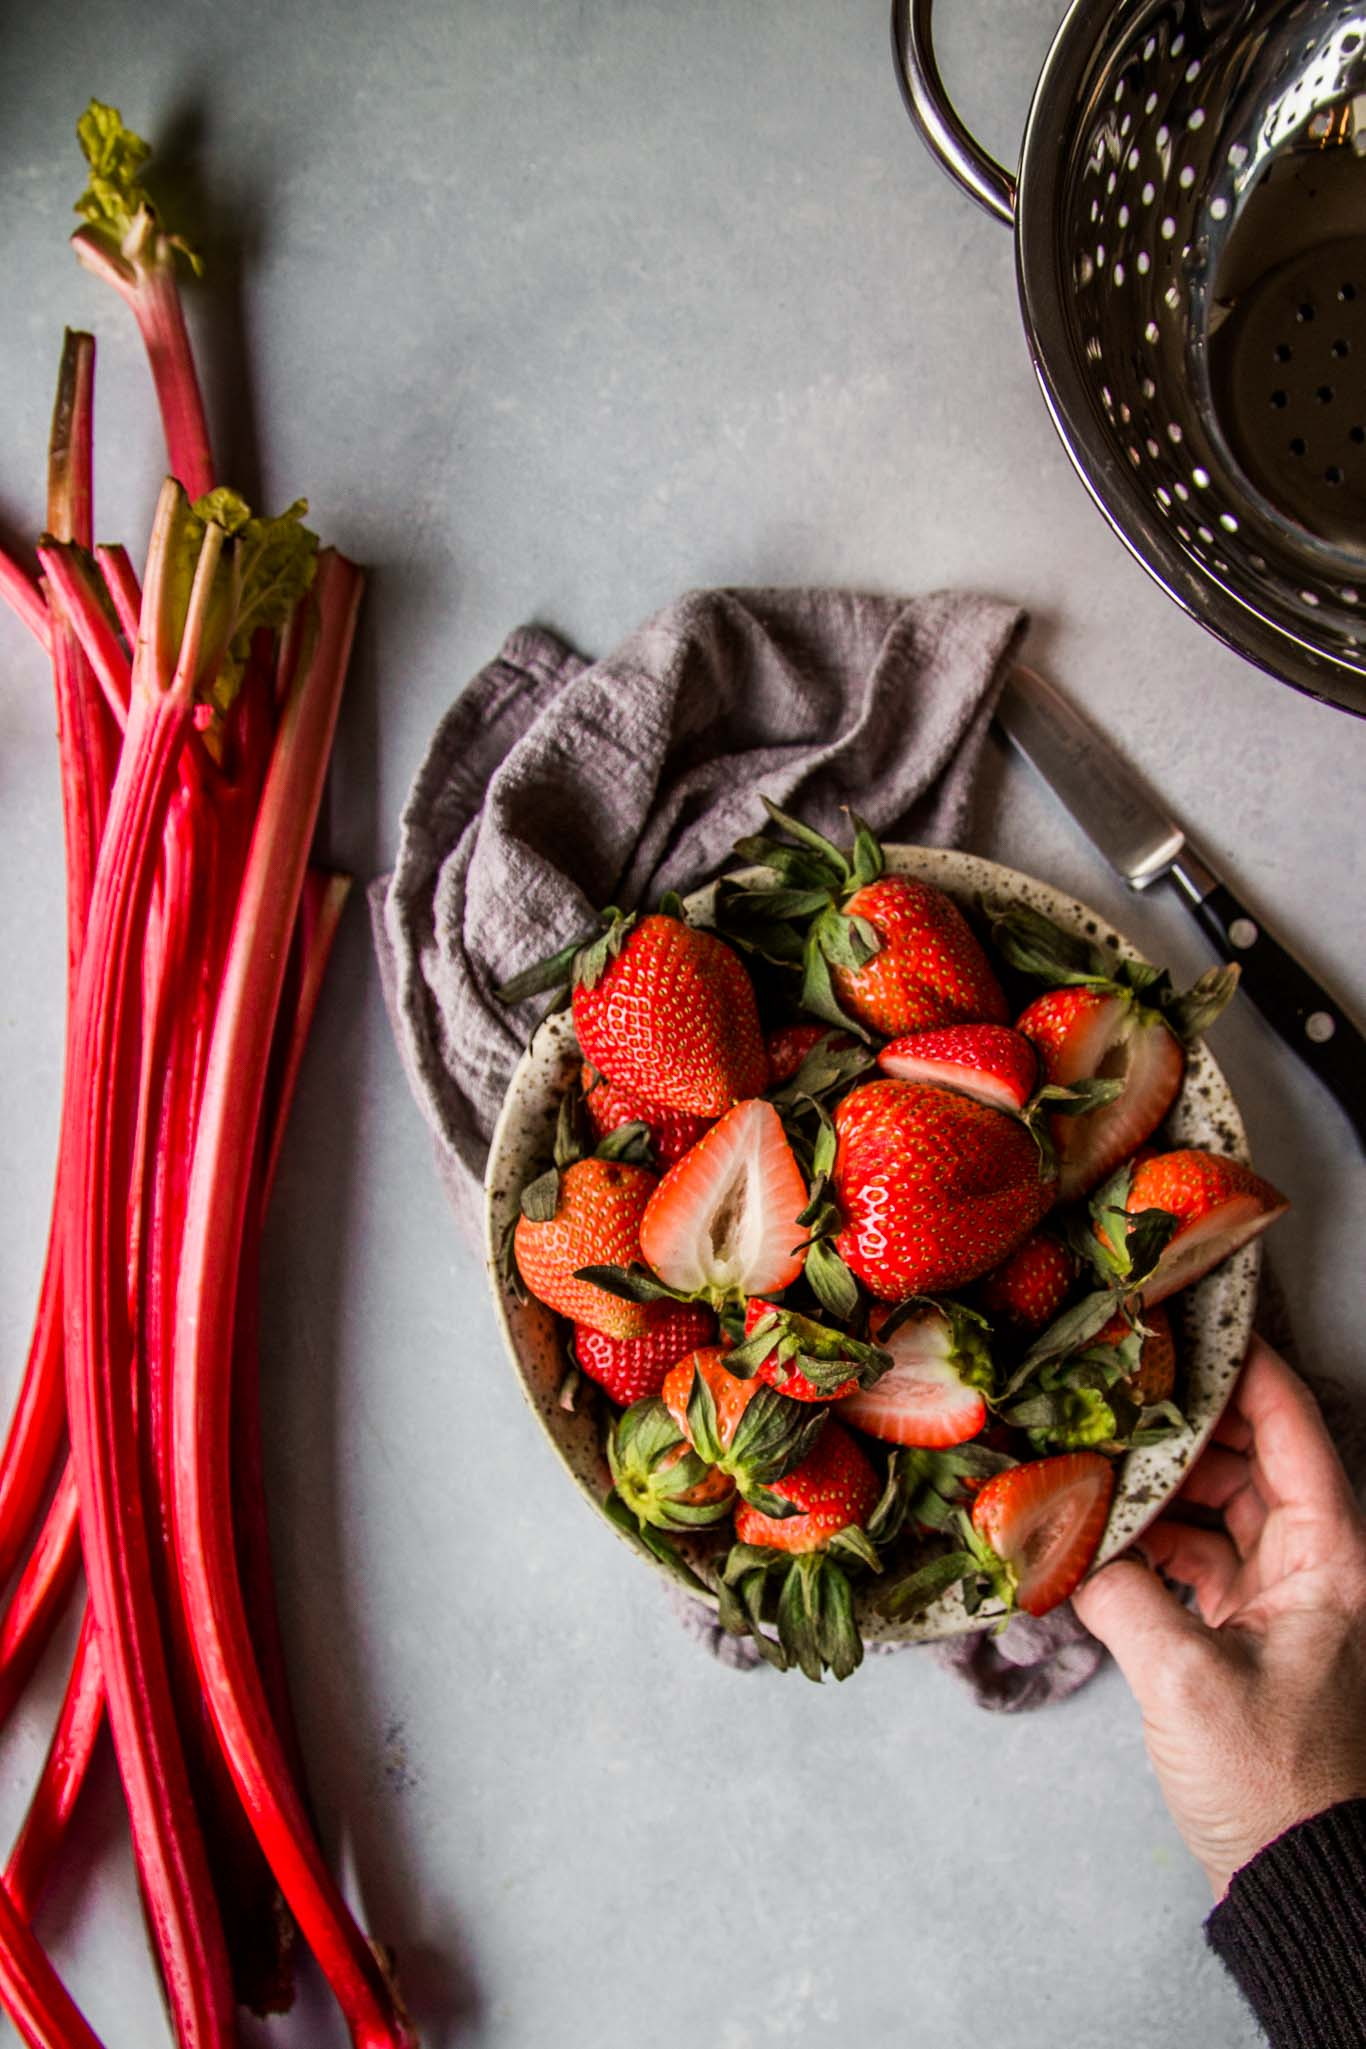 Hand reaching for bowl of strawberries next to rhubarb